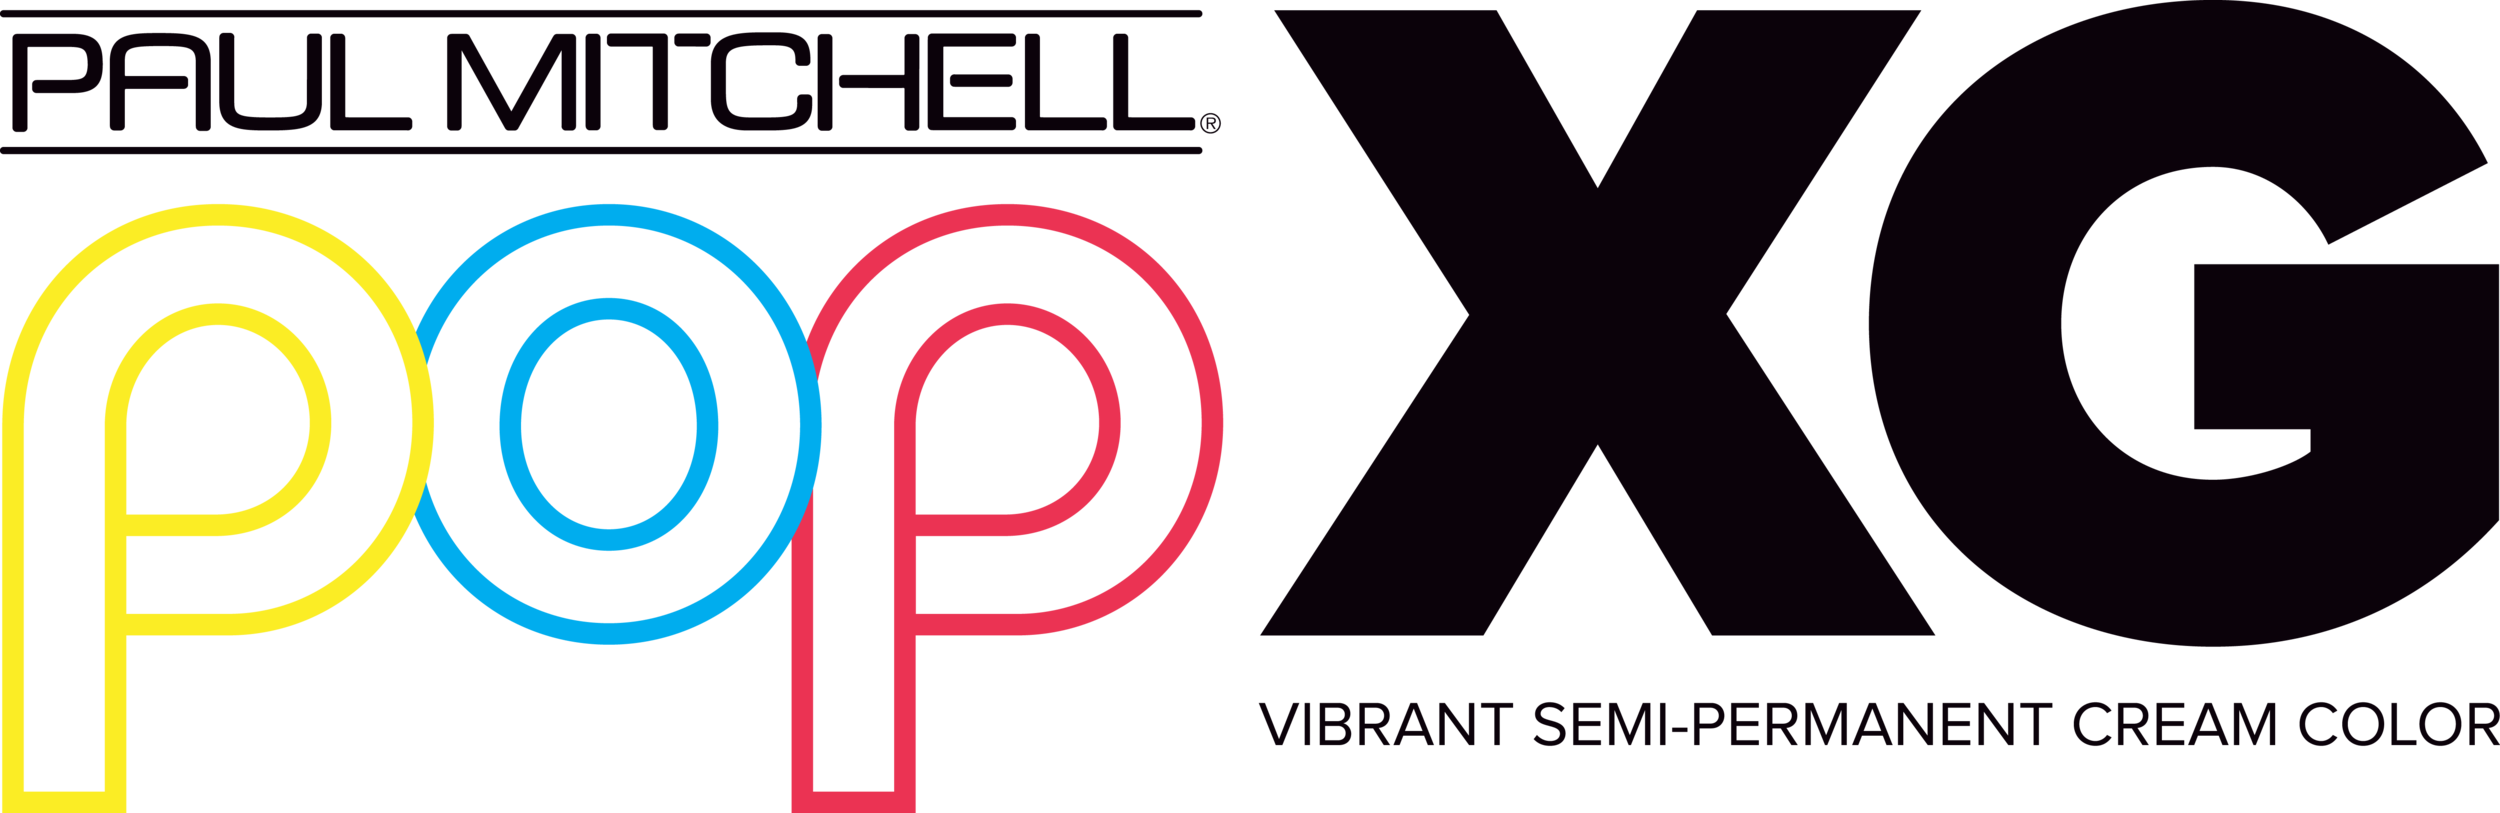 pop-xg-logo-4-color.png